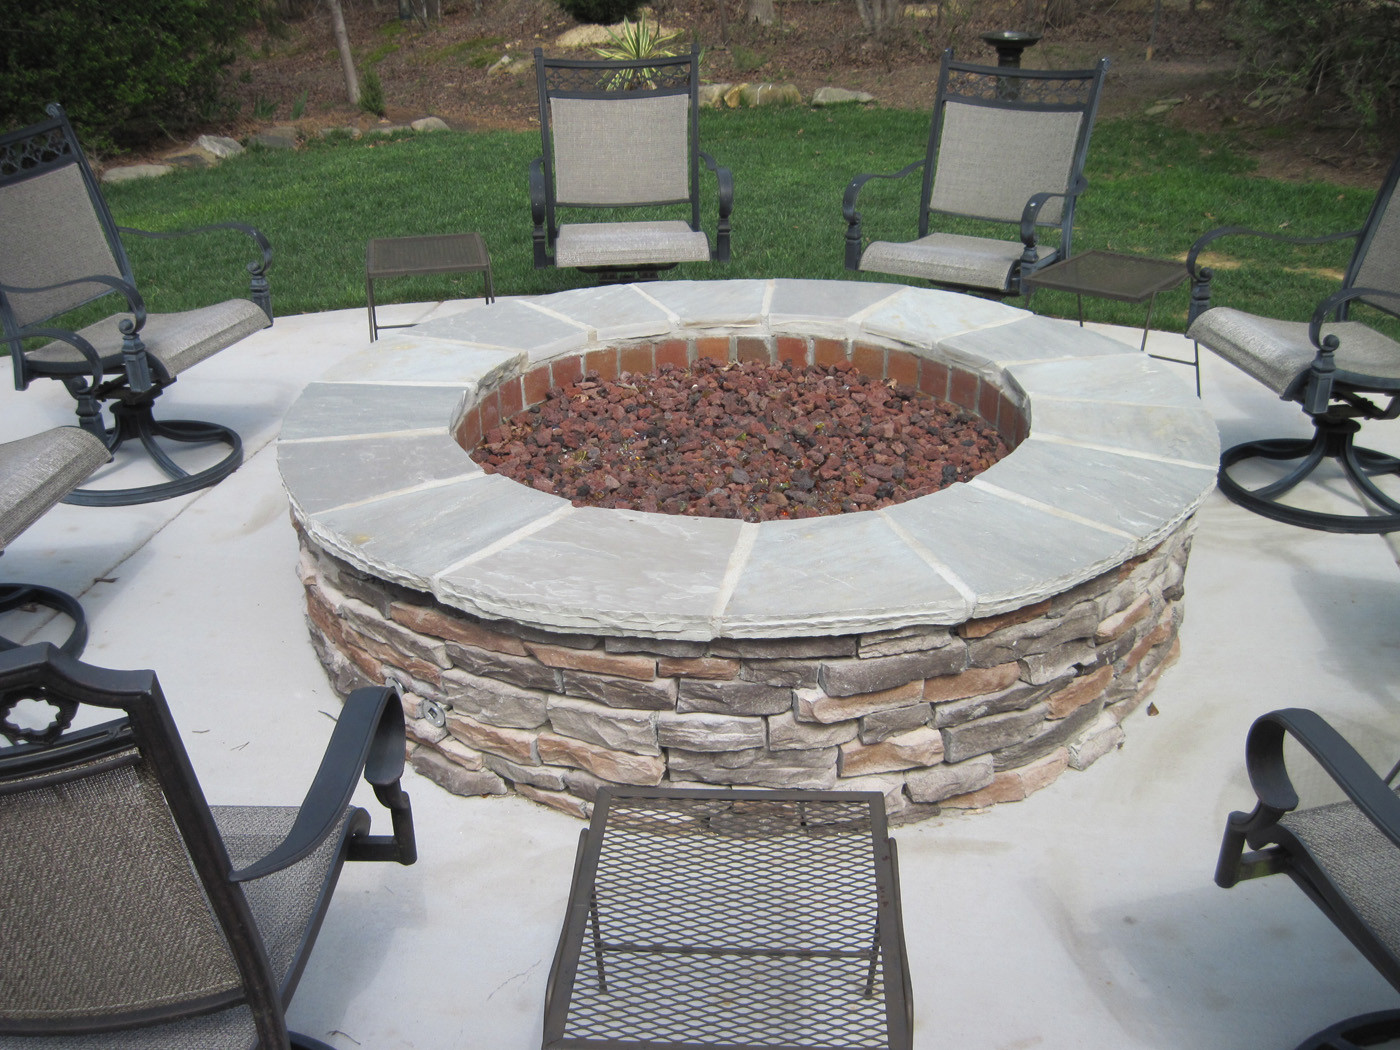 Best ideas about Patio Fire Pit . Save or Pin Your Premier Salt Lake City Outdoor Fireplace & Firepit Now.